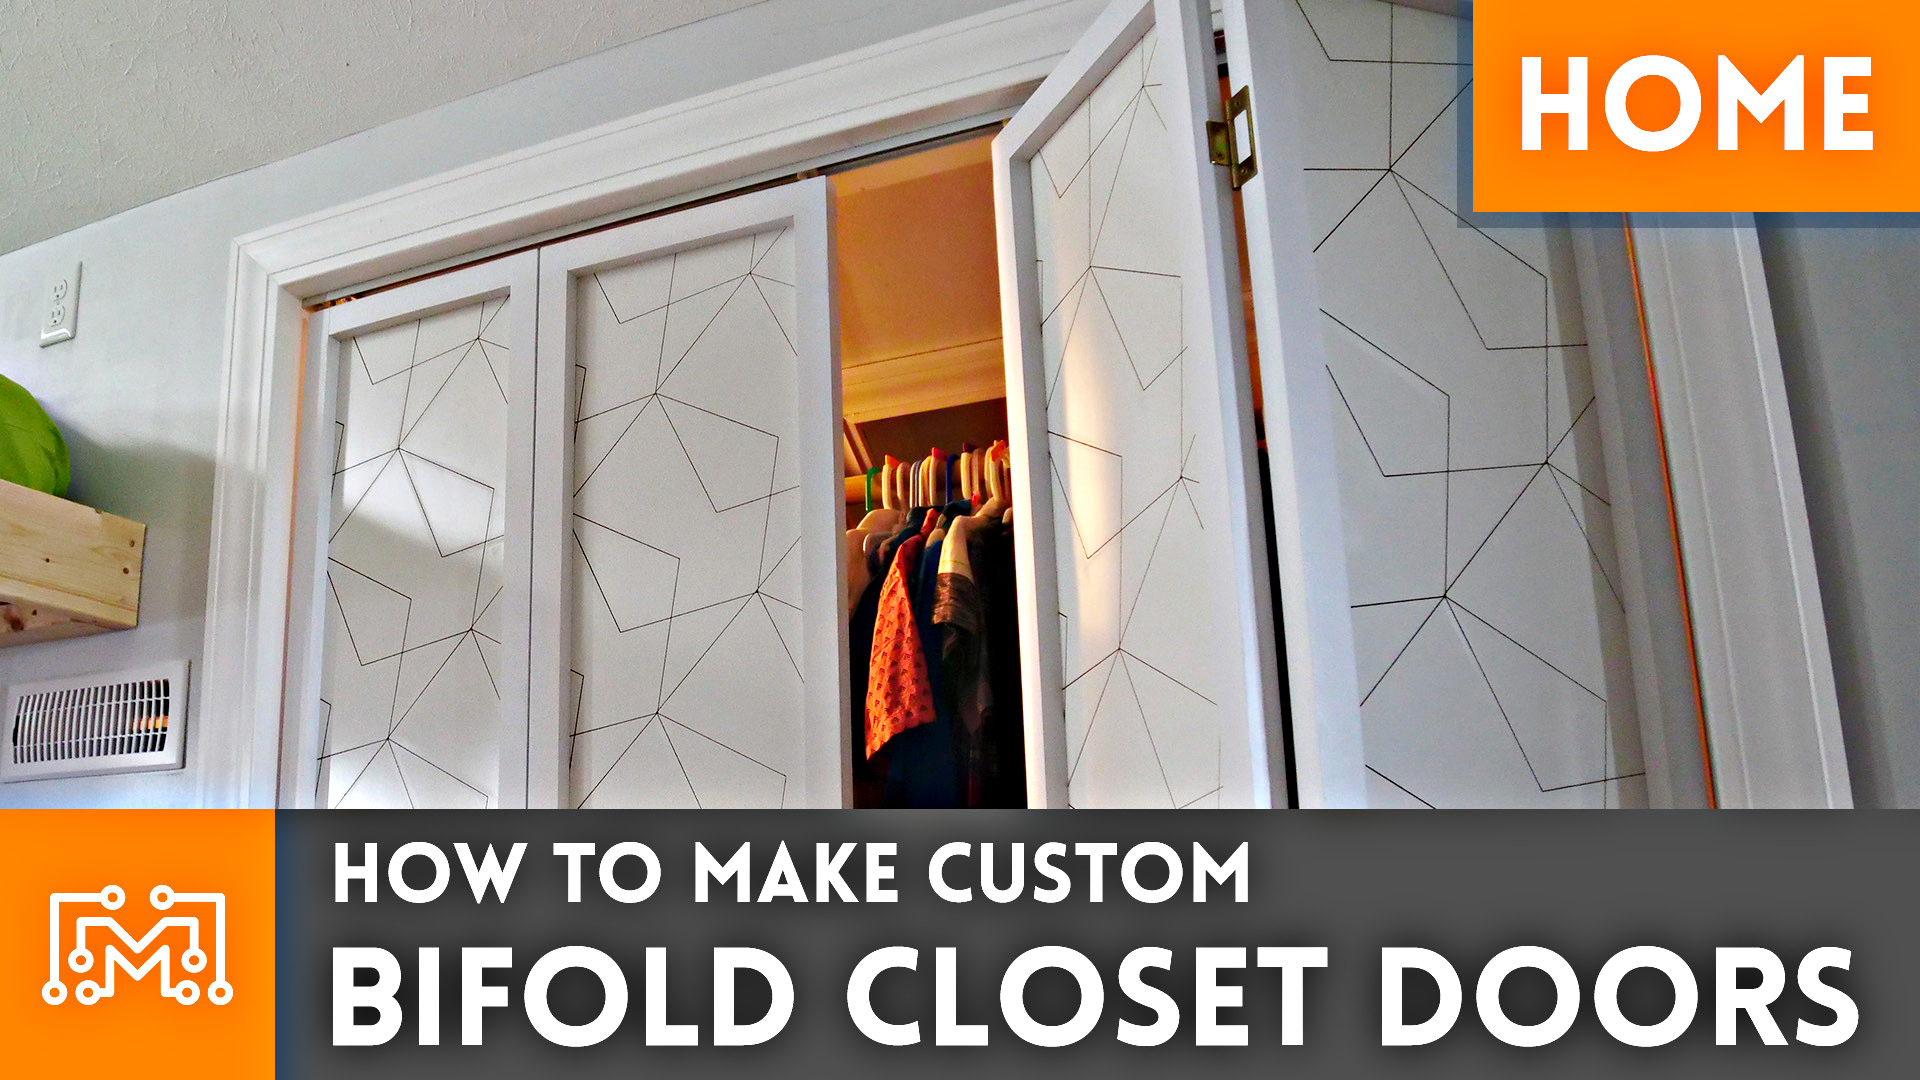 Making Custom Bifold Closet Doors I Like To Make Stuff